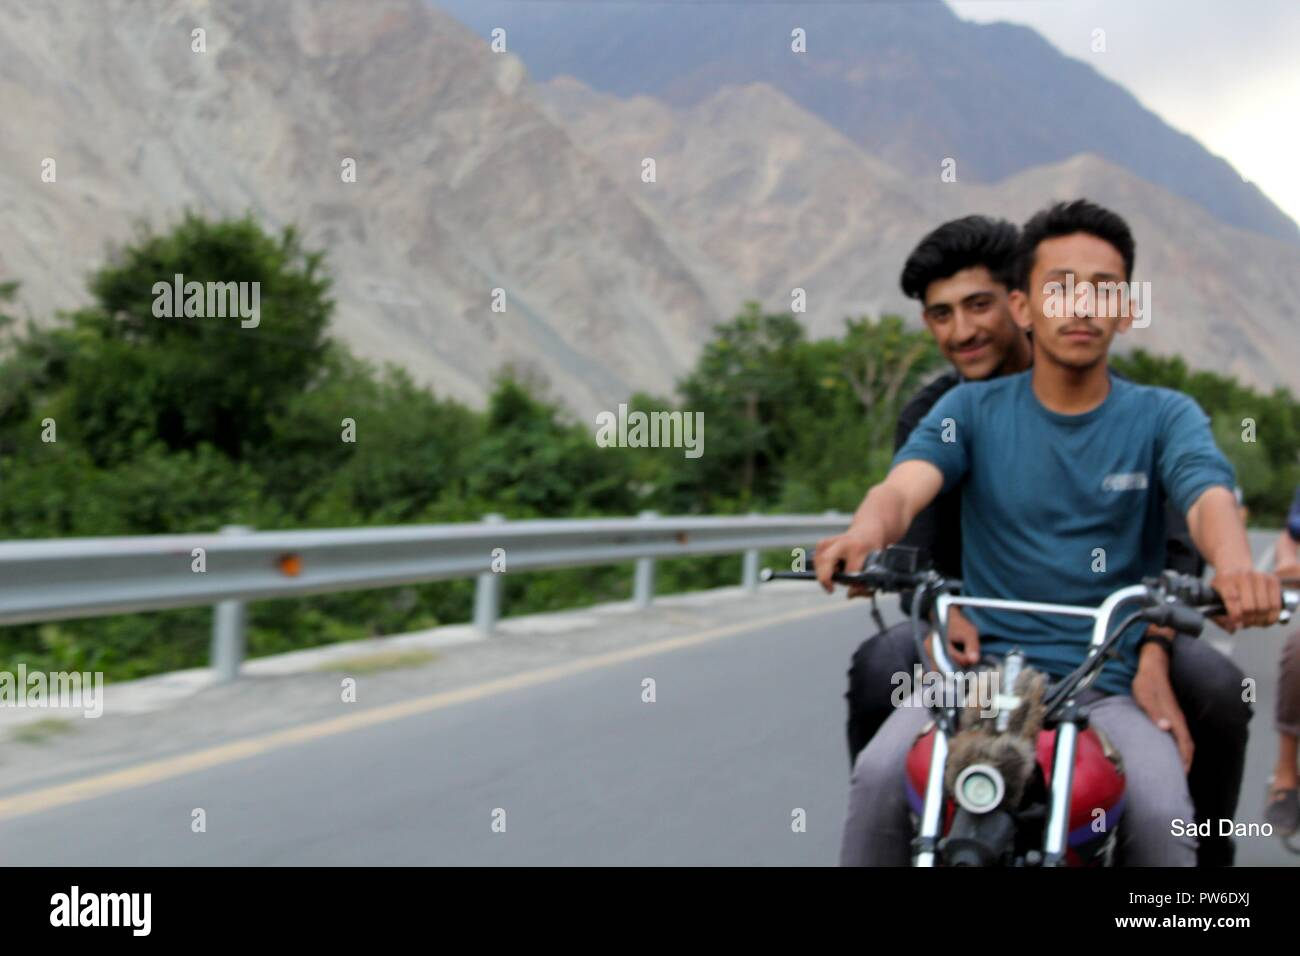 hunza boys ride bike - Stock Image